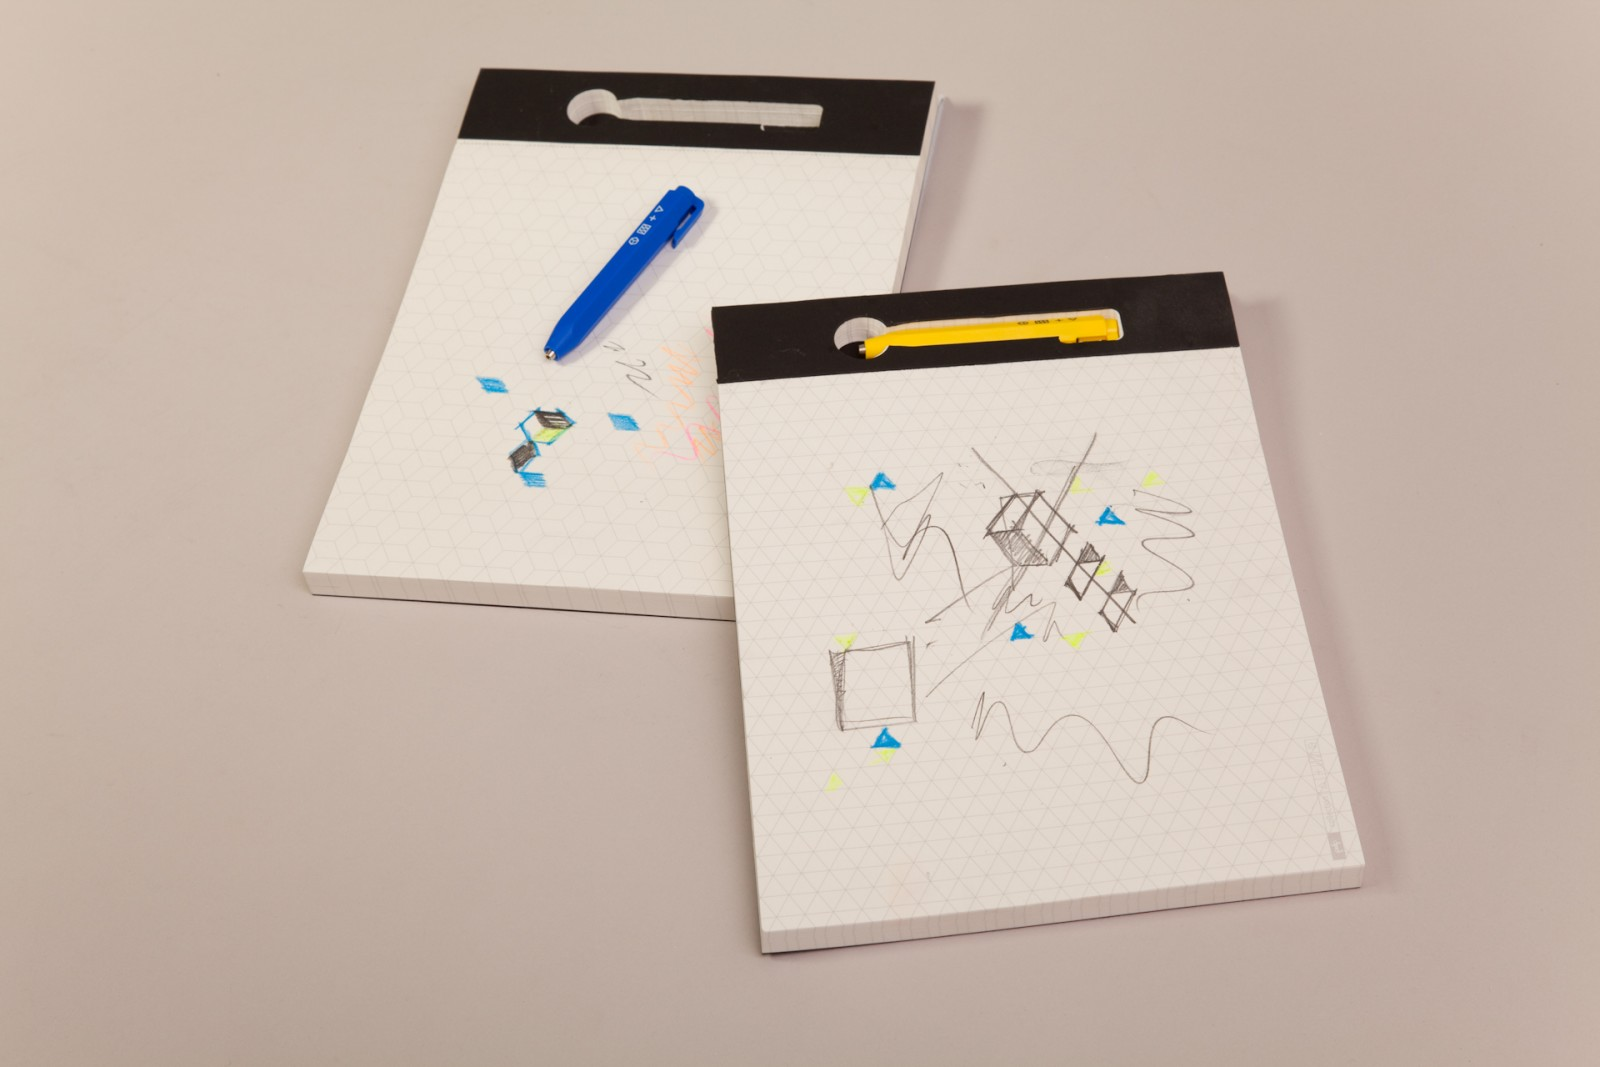 A4 Notepad + Shorty Mechanical Pencil Yellow Pencil